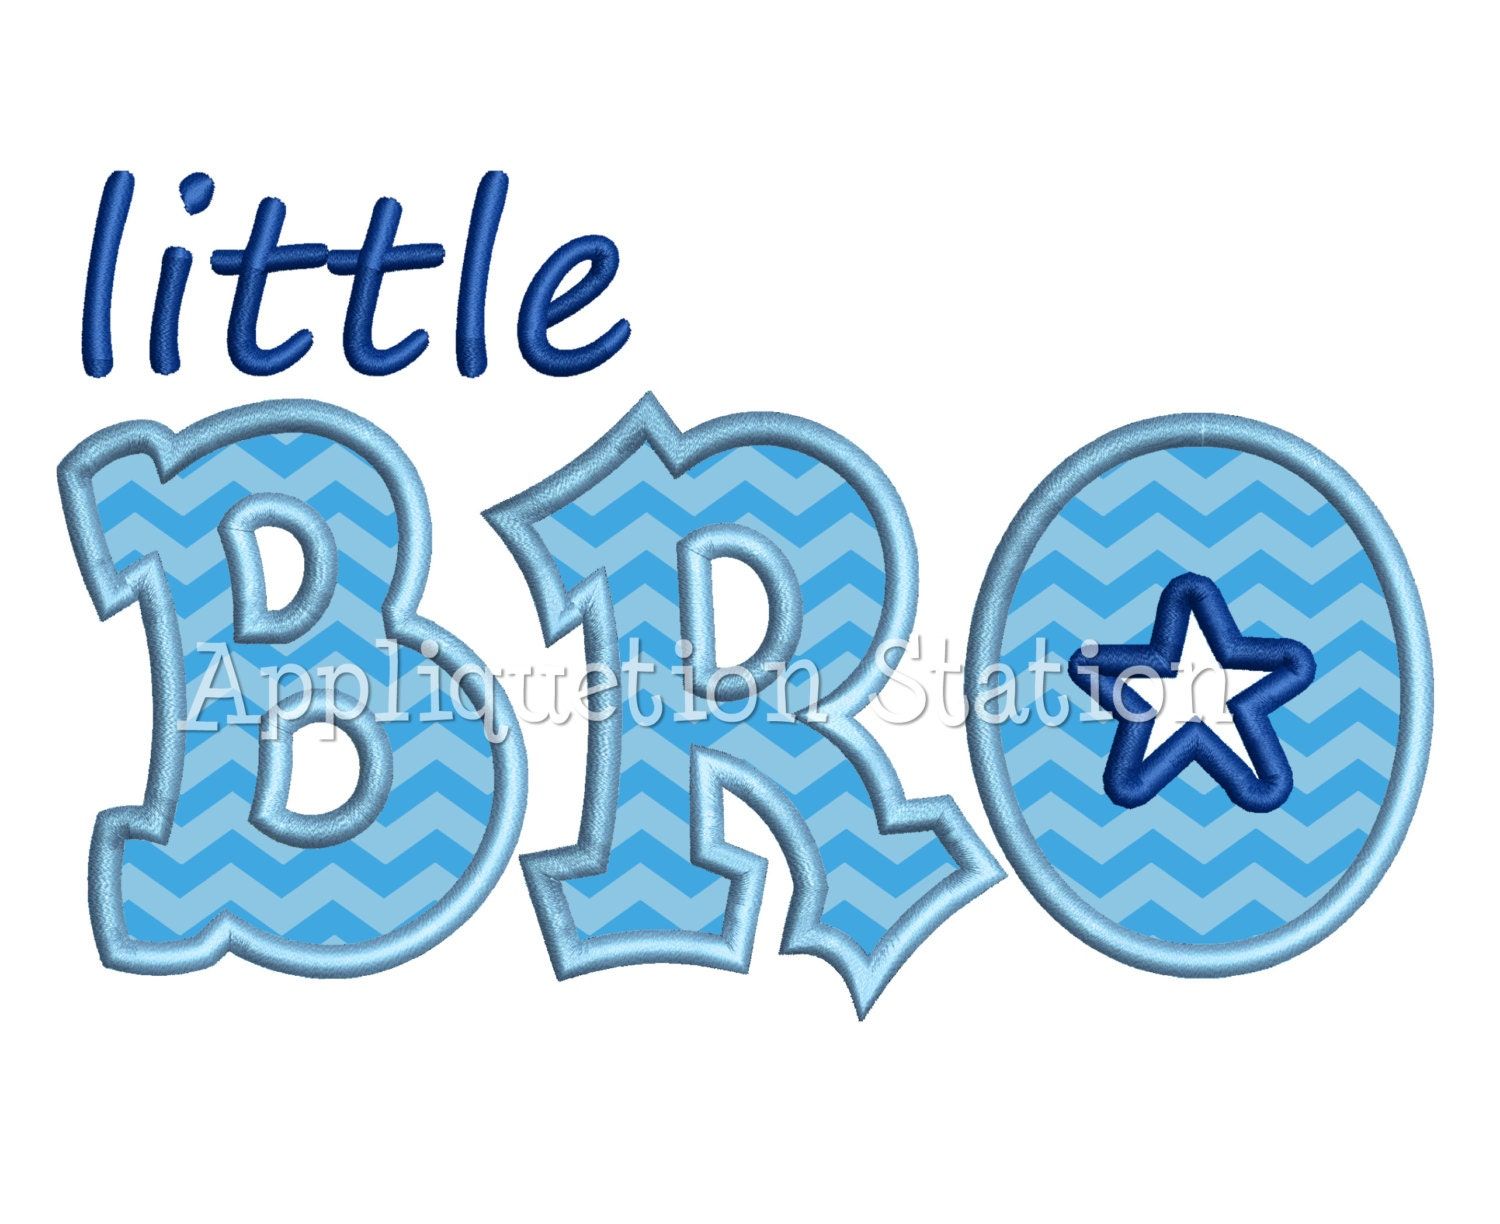 Little bro applique machine embroidery design brother